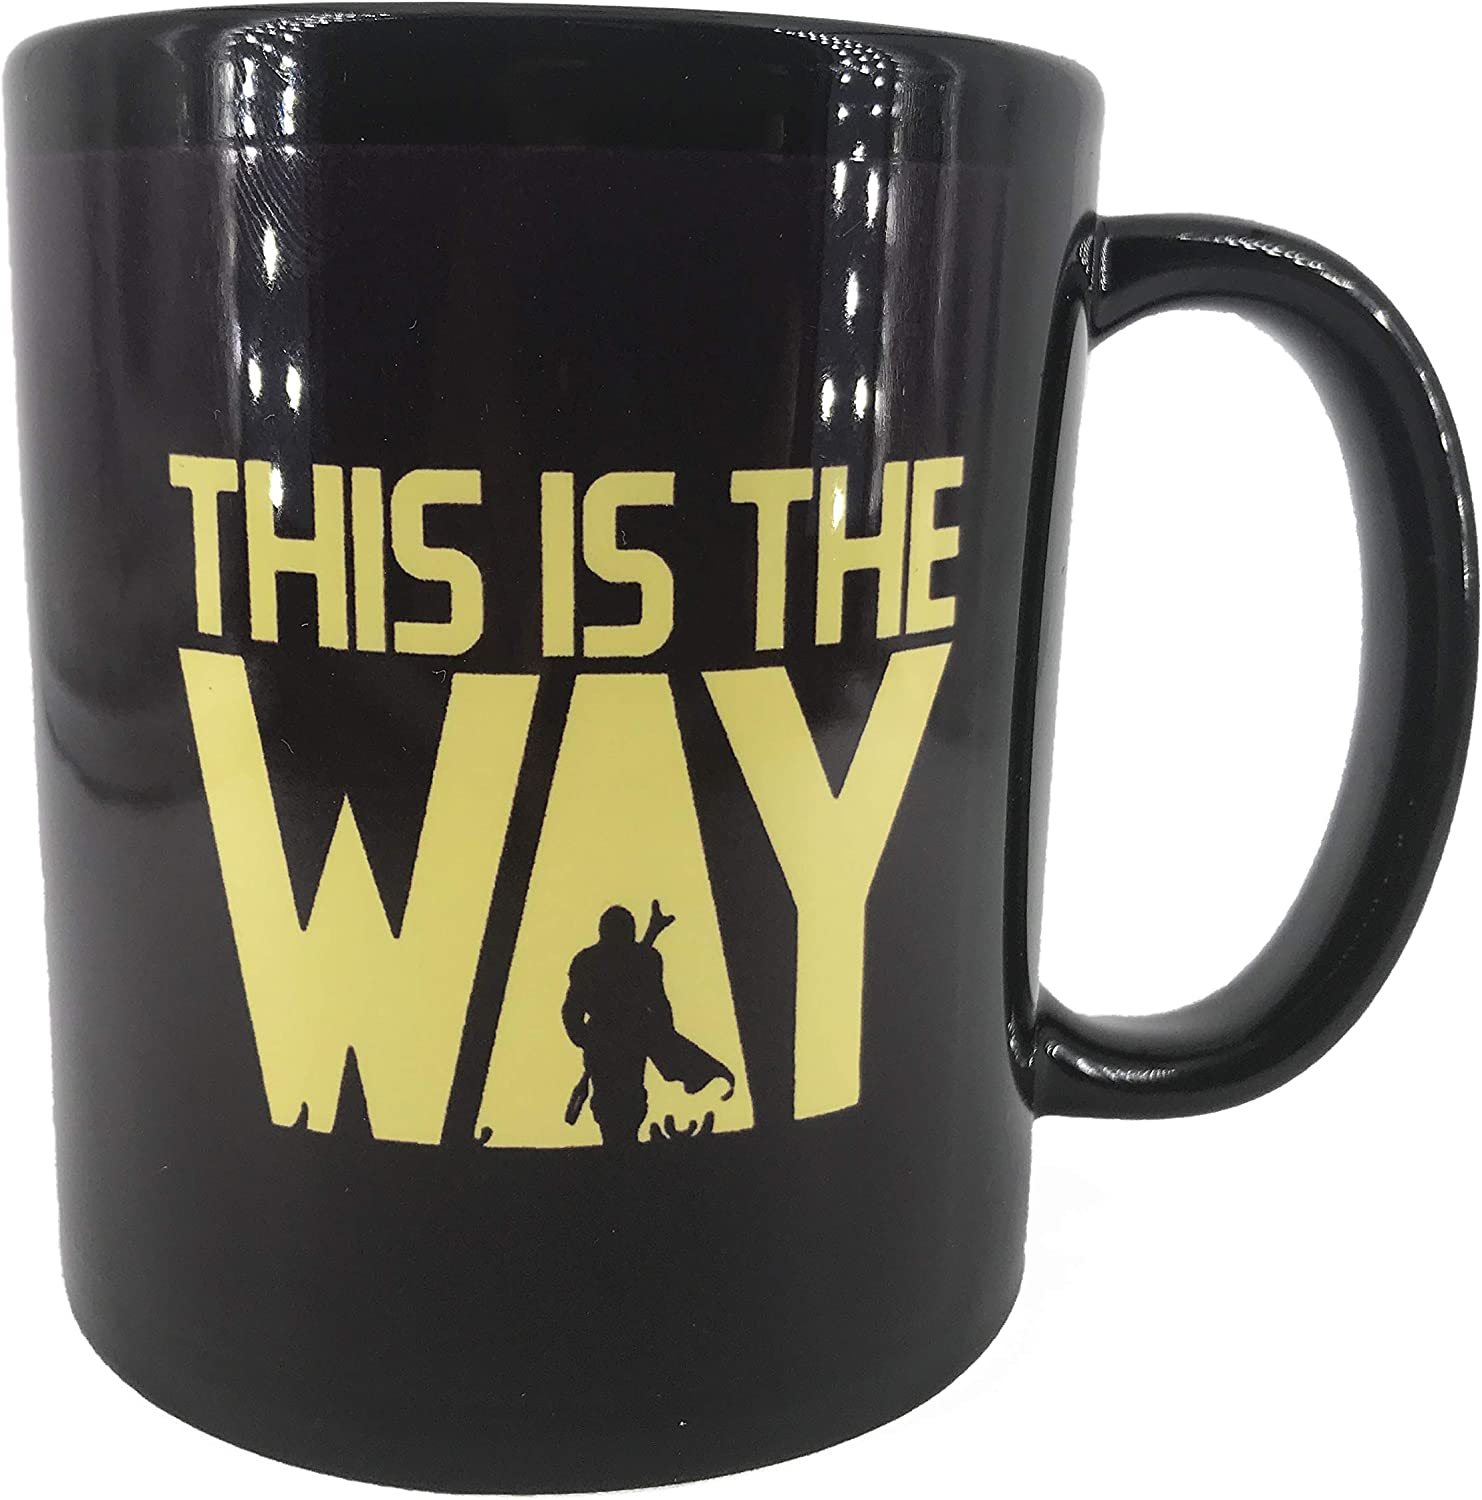 "Star Wars Themed""THIS IS THE WAY"" Quote Coffee Mug, The Mandalorian TV Series Inspired, 11oz Black Ceramic, Microwave Dish Washer Safe, Won't Fade Away, Fathers Day Gift, Husband, Boyfriend Birthday"